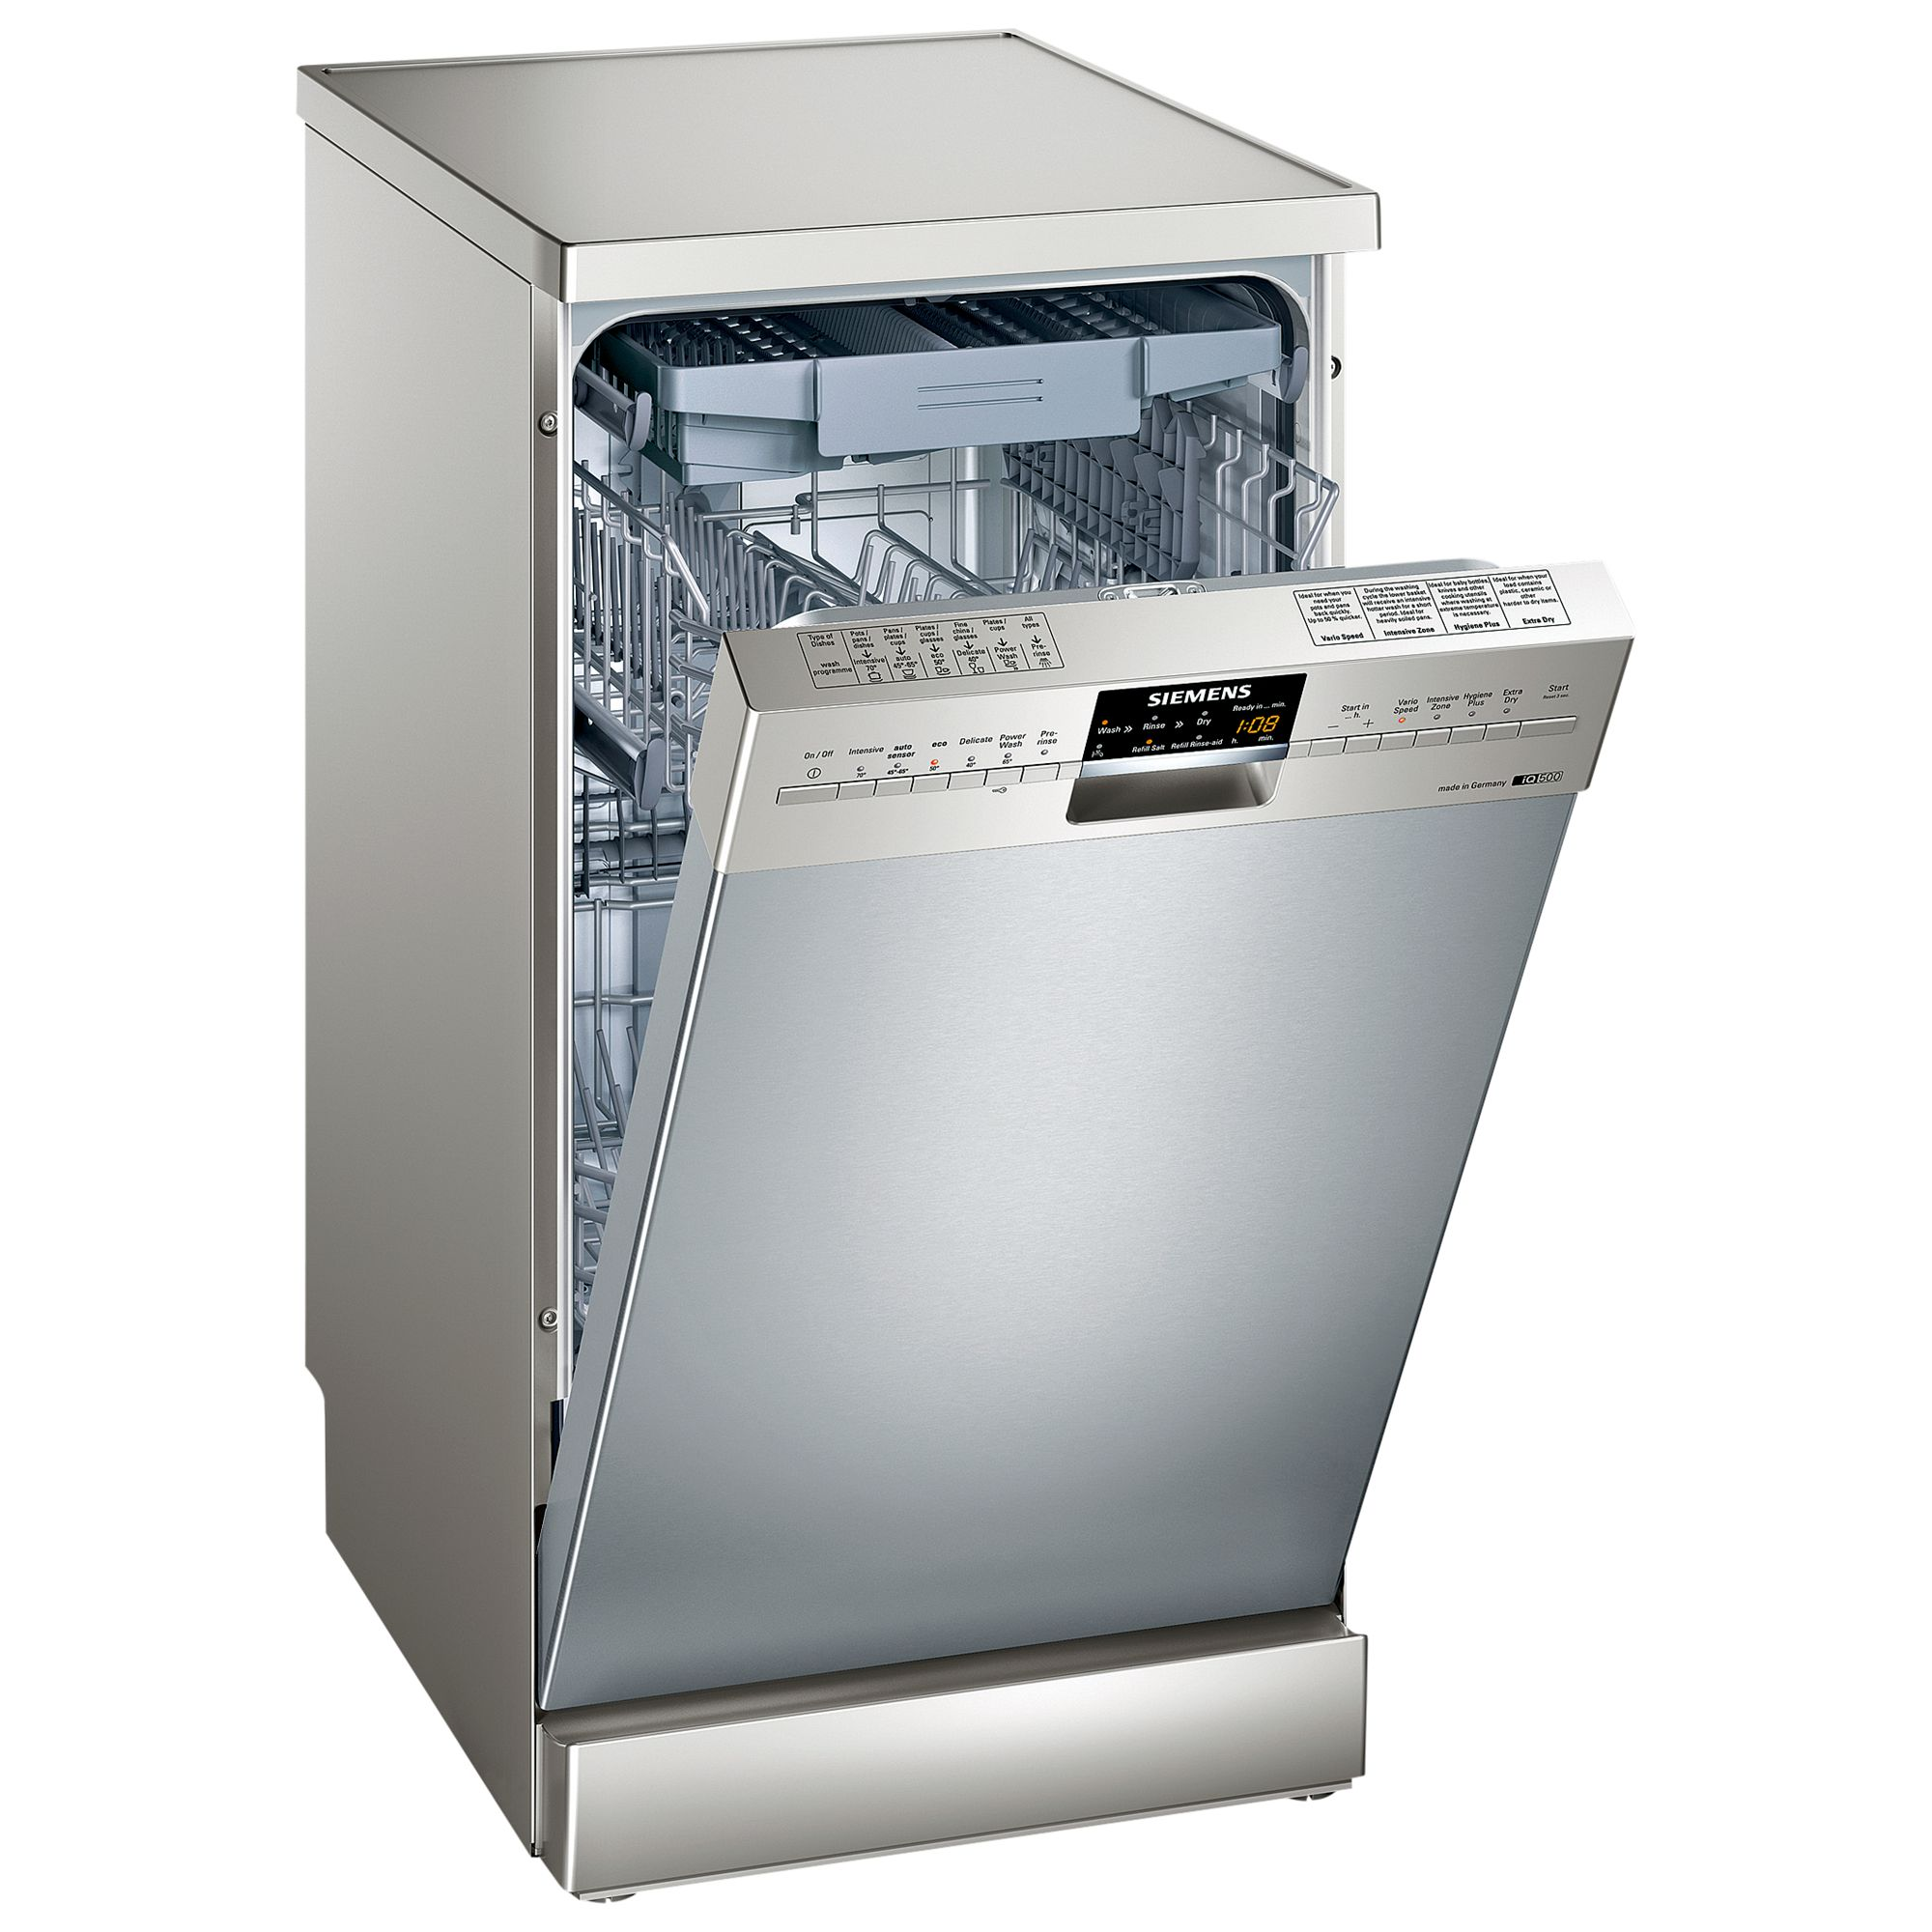 Siemens SR26T890GB Slimline Dishwasher Stainless Steel